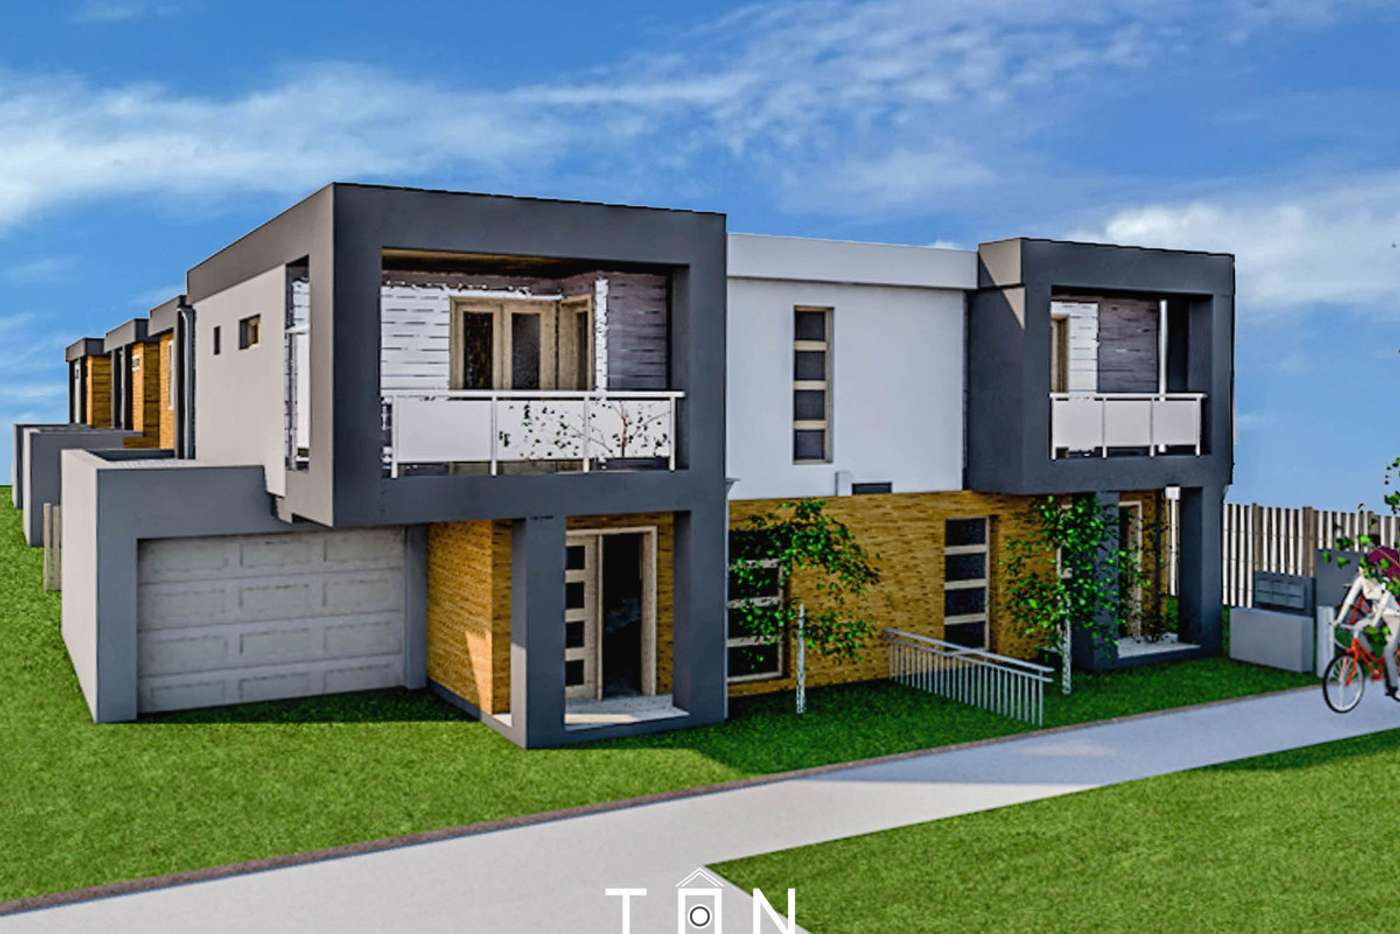 Main view of Homely townhouse listing, 4/43 Bakewell Street, Cranbourne VIC 3977